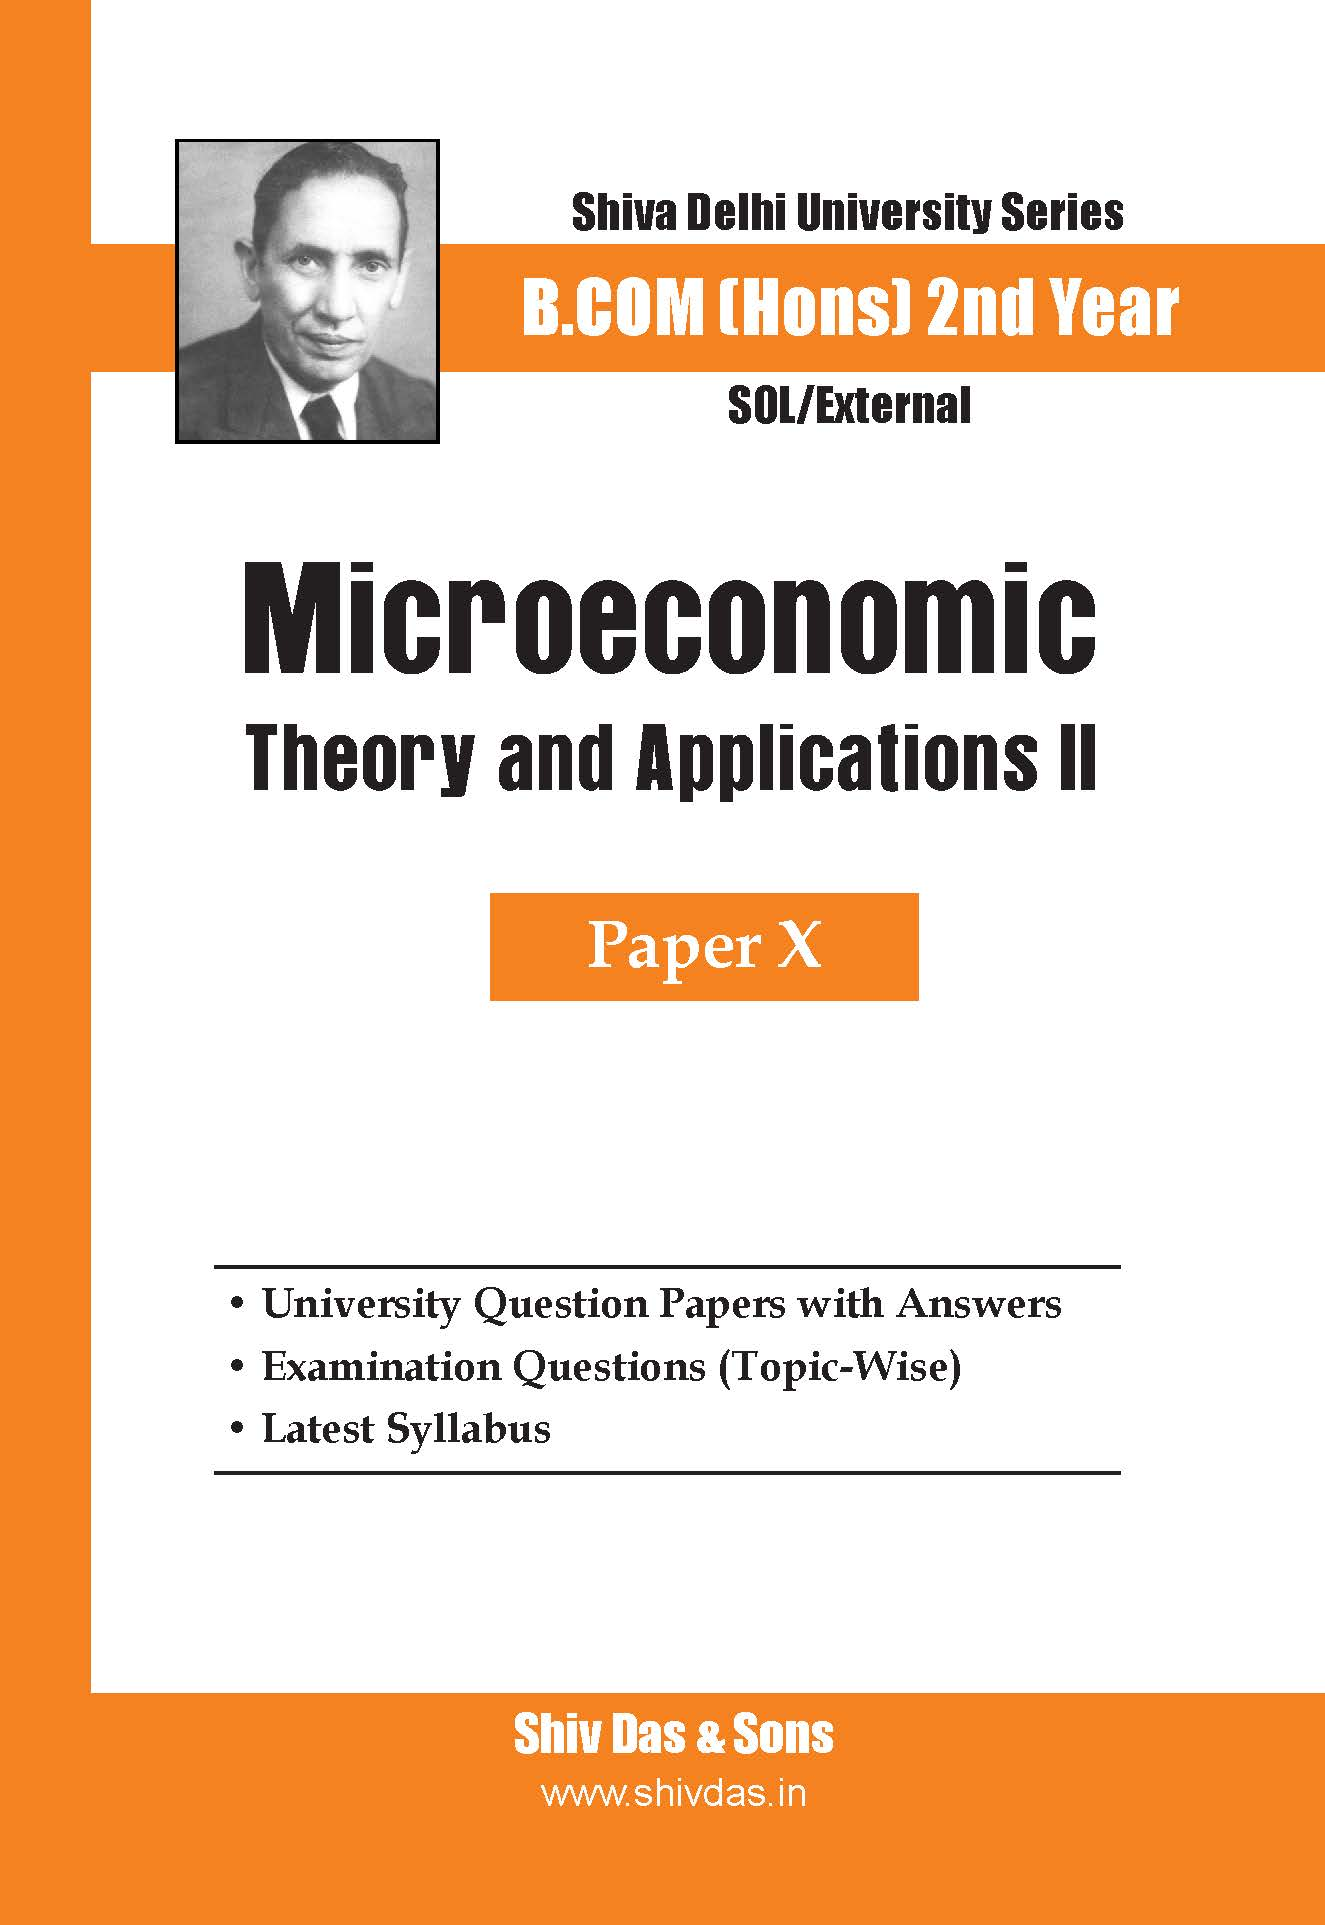 B.Com Hons-SOL/External-2nd Year-Microeconomics Theory and Applicatons - II-Shiv Das-Delhi University Series